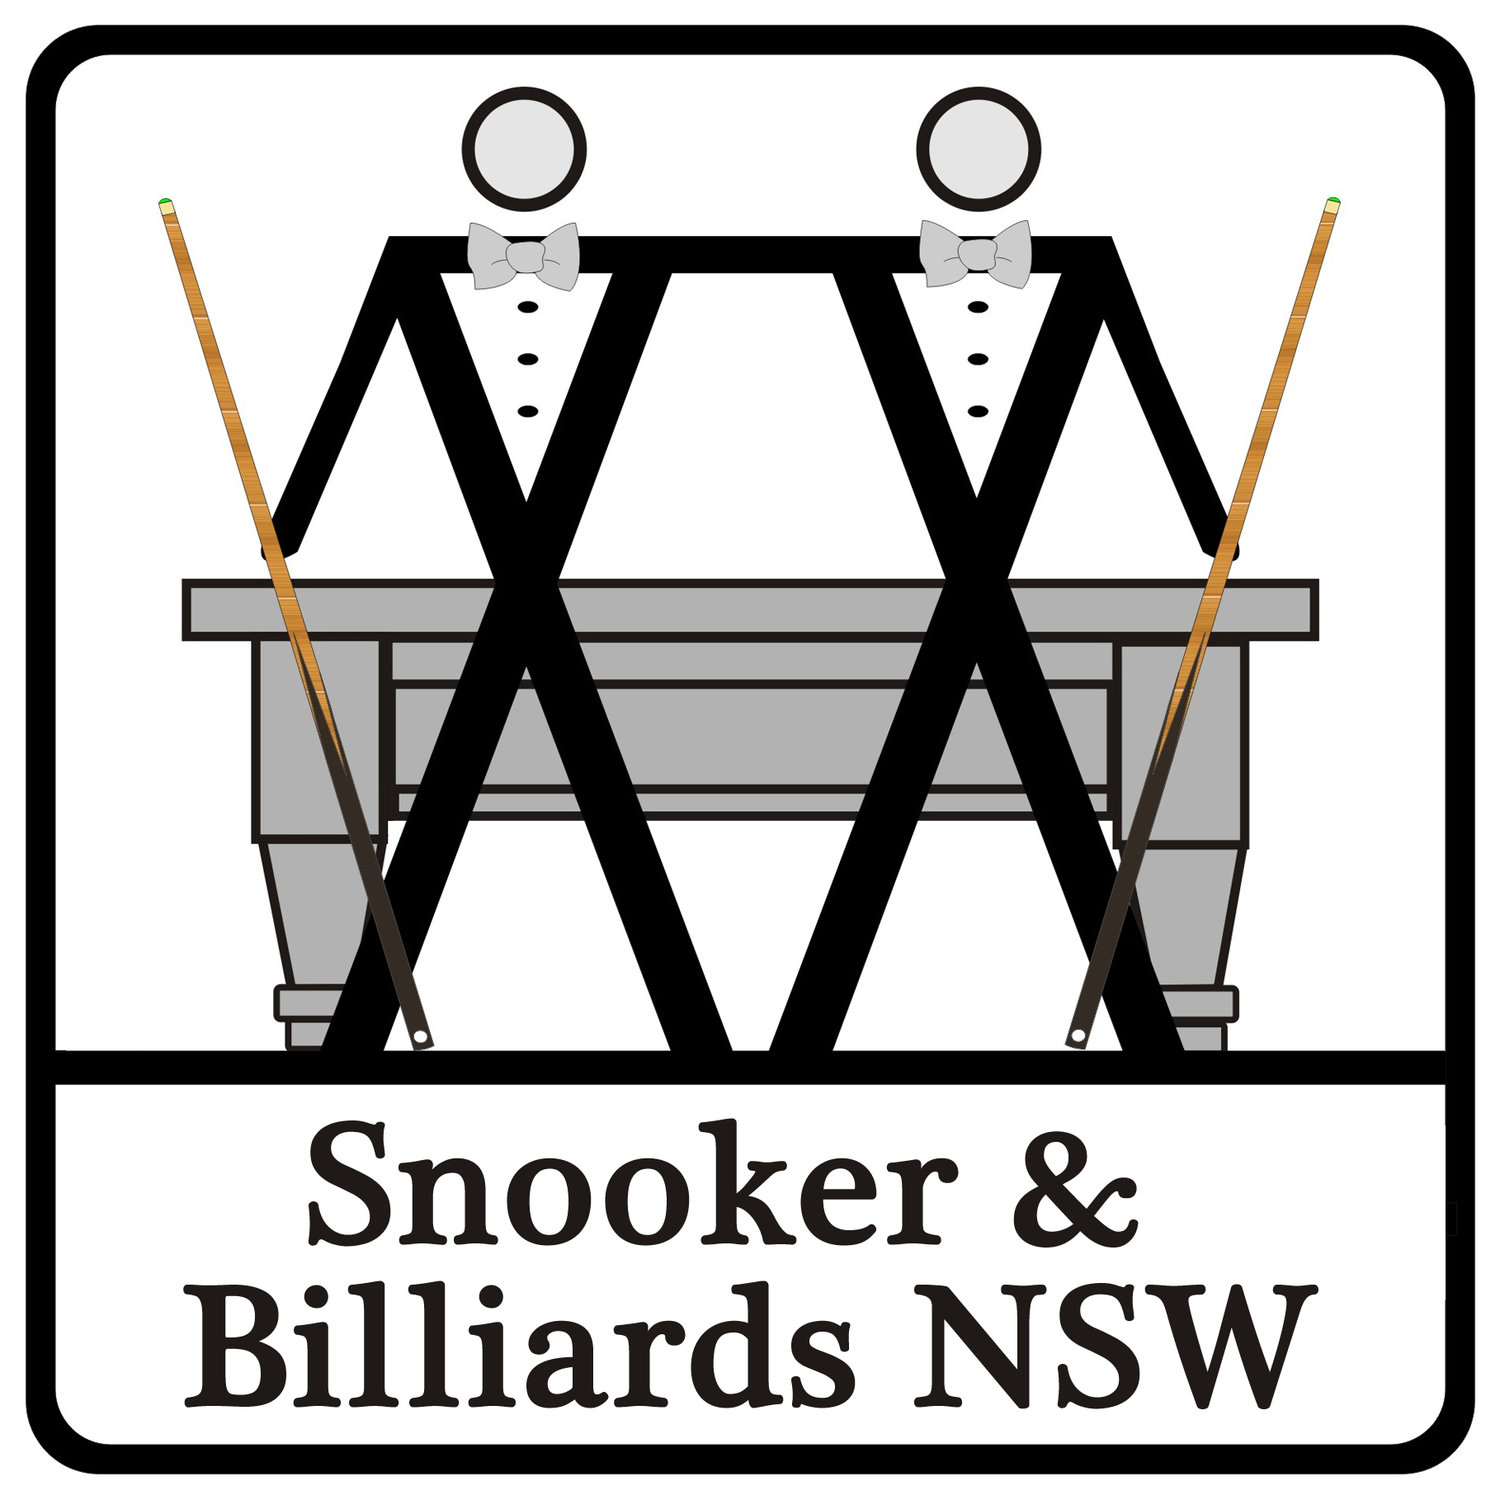 NSW Snooker and Billiards